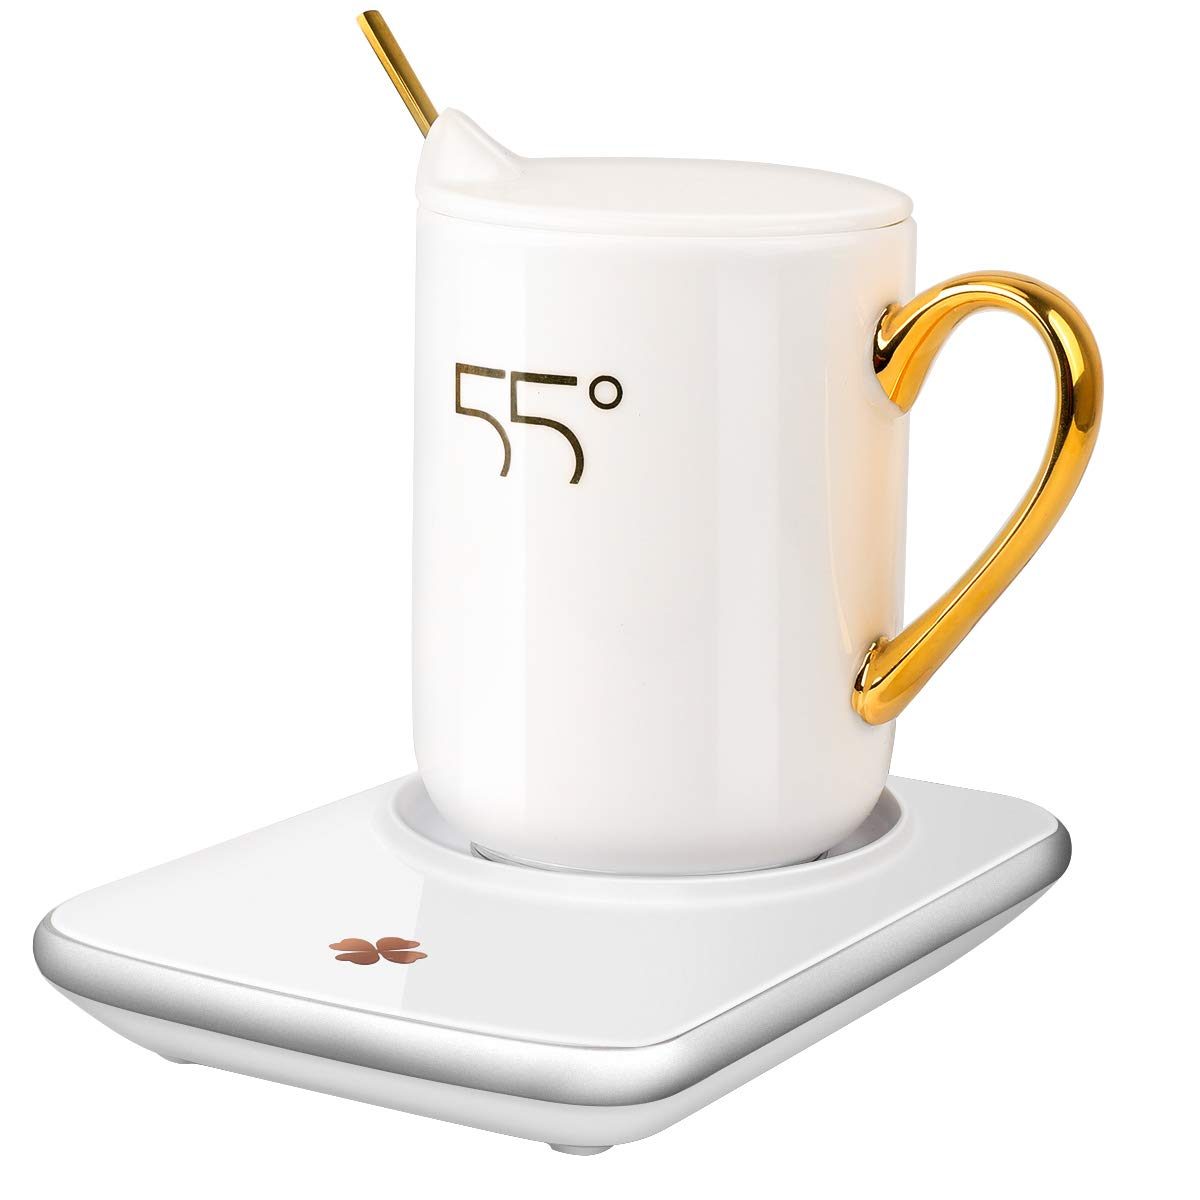 Misby Coffee Cup Warmer for Desk Rapid Heating Coffee Warmer With Auto Shut Off Switch Electric Coffee Mug Warmer With Three Adjustable Temperature Settings(122℉, 140℉, 176℉), Include Heat Conduction Cup by Misby